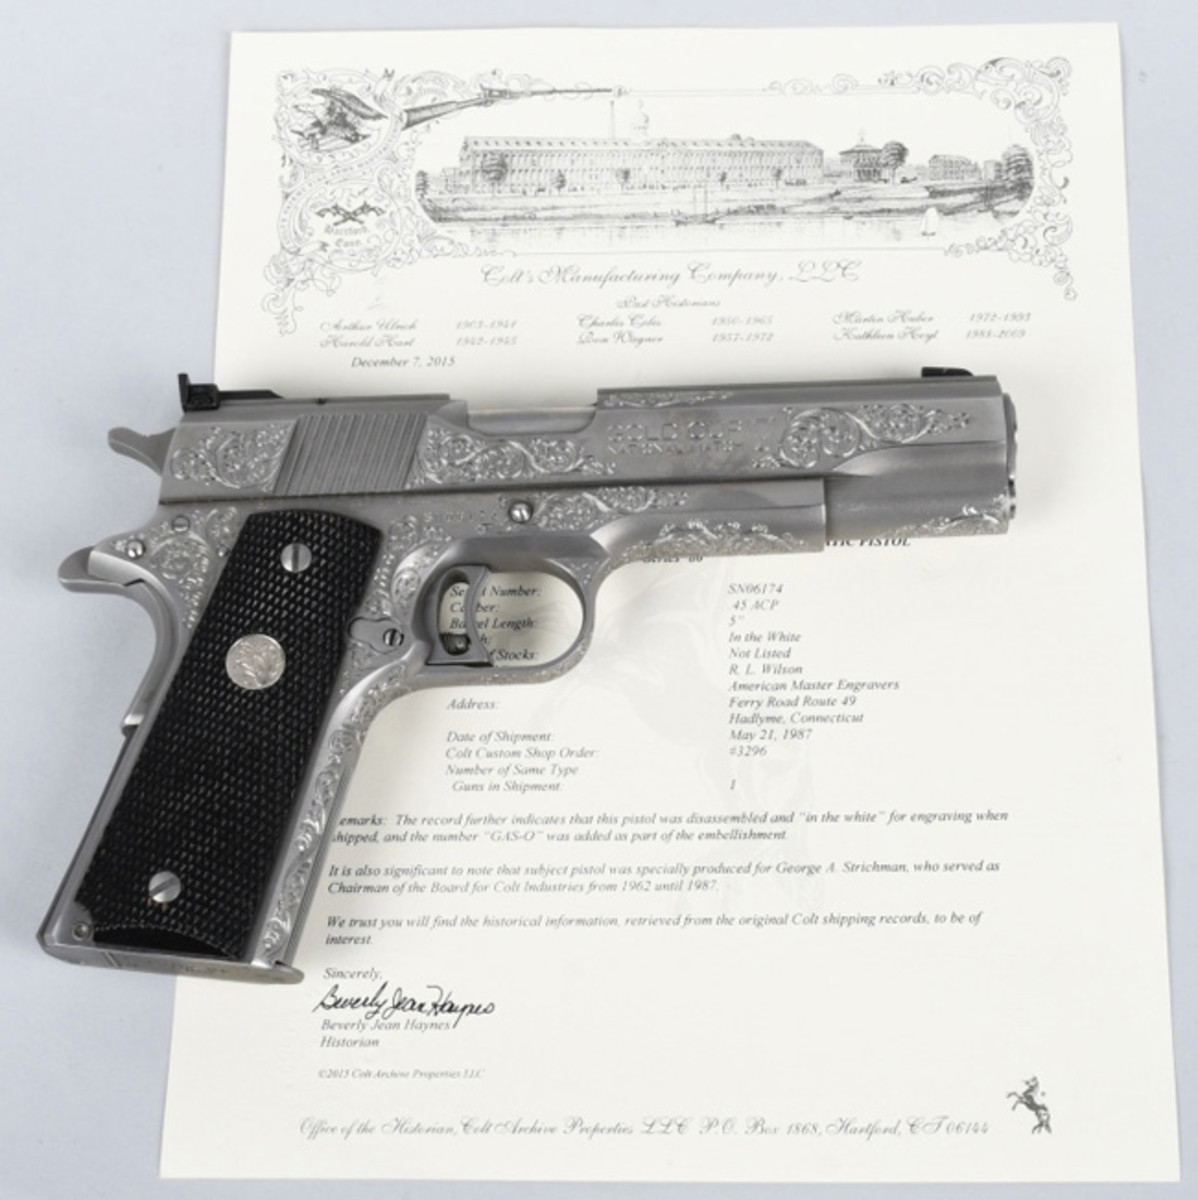 Colt Gold Cup National Match semi-automatic pistol in .45 ACP, specially made for George Strichman, Colt chairman of the board from 1962-1987, $9,300